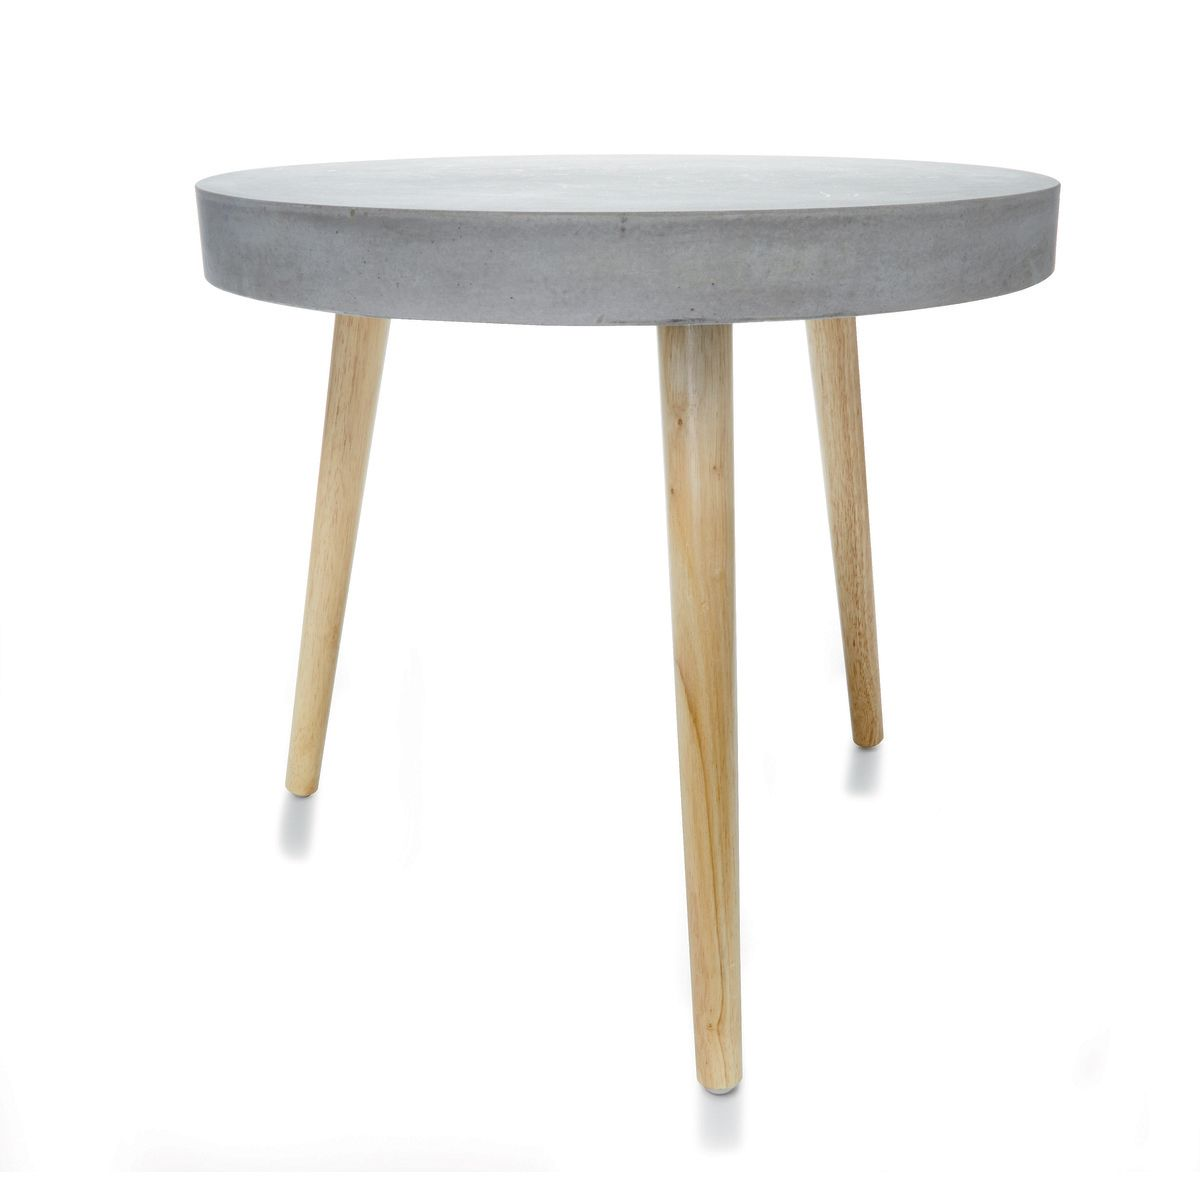 concrete side table kmart home wishlist tables furniture end vintage glass round seagrass coffee reclining deck chair elephant base stackable patio navy bedside white washed wood